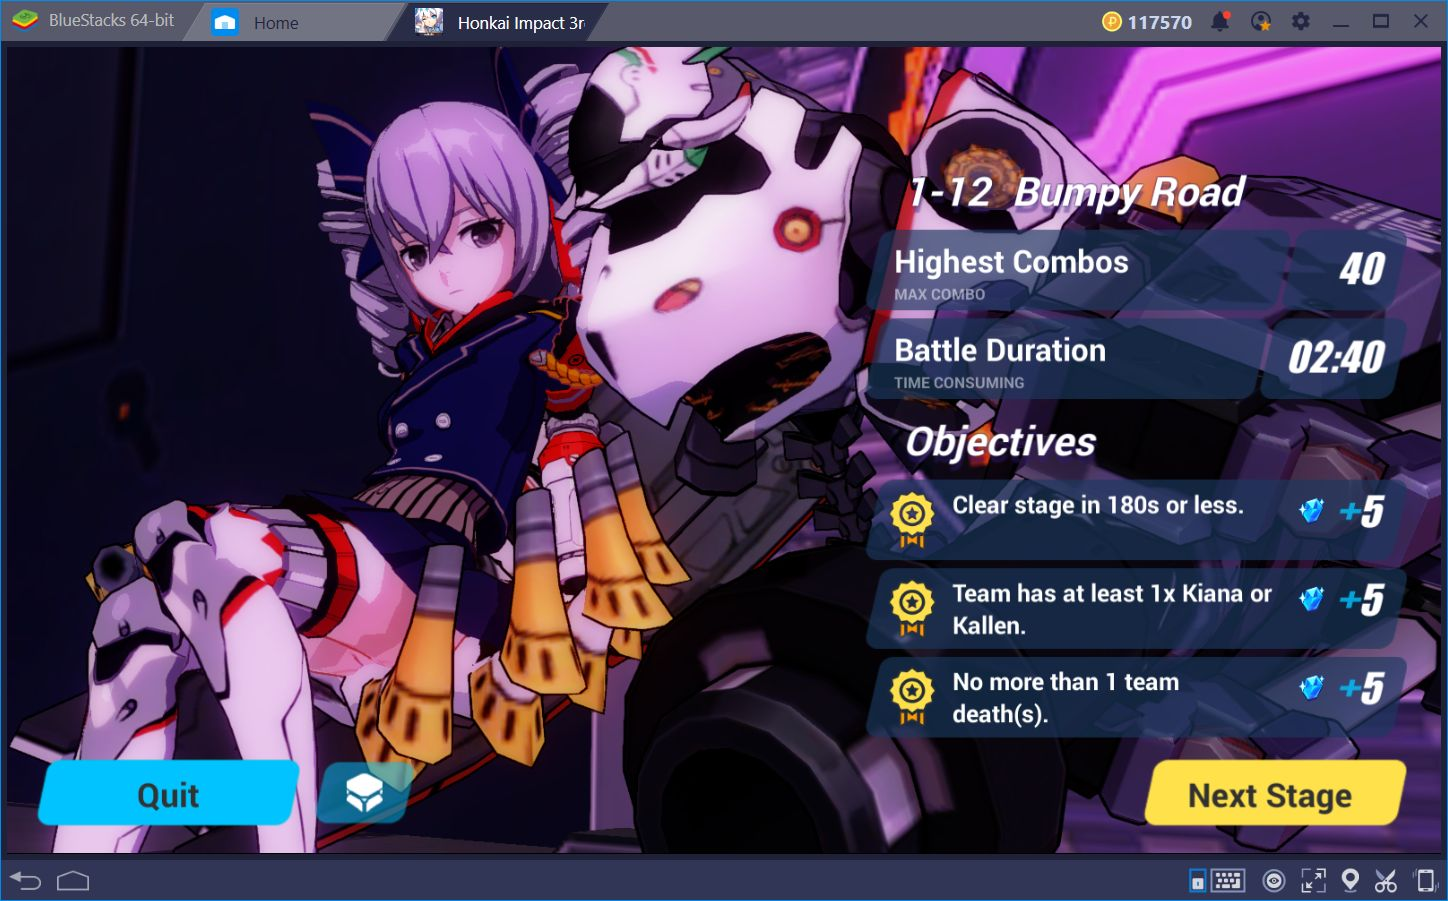 Combat Tactics for Honkai Impact 3rd | BlueStacks